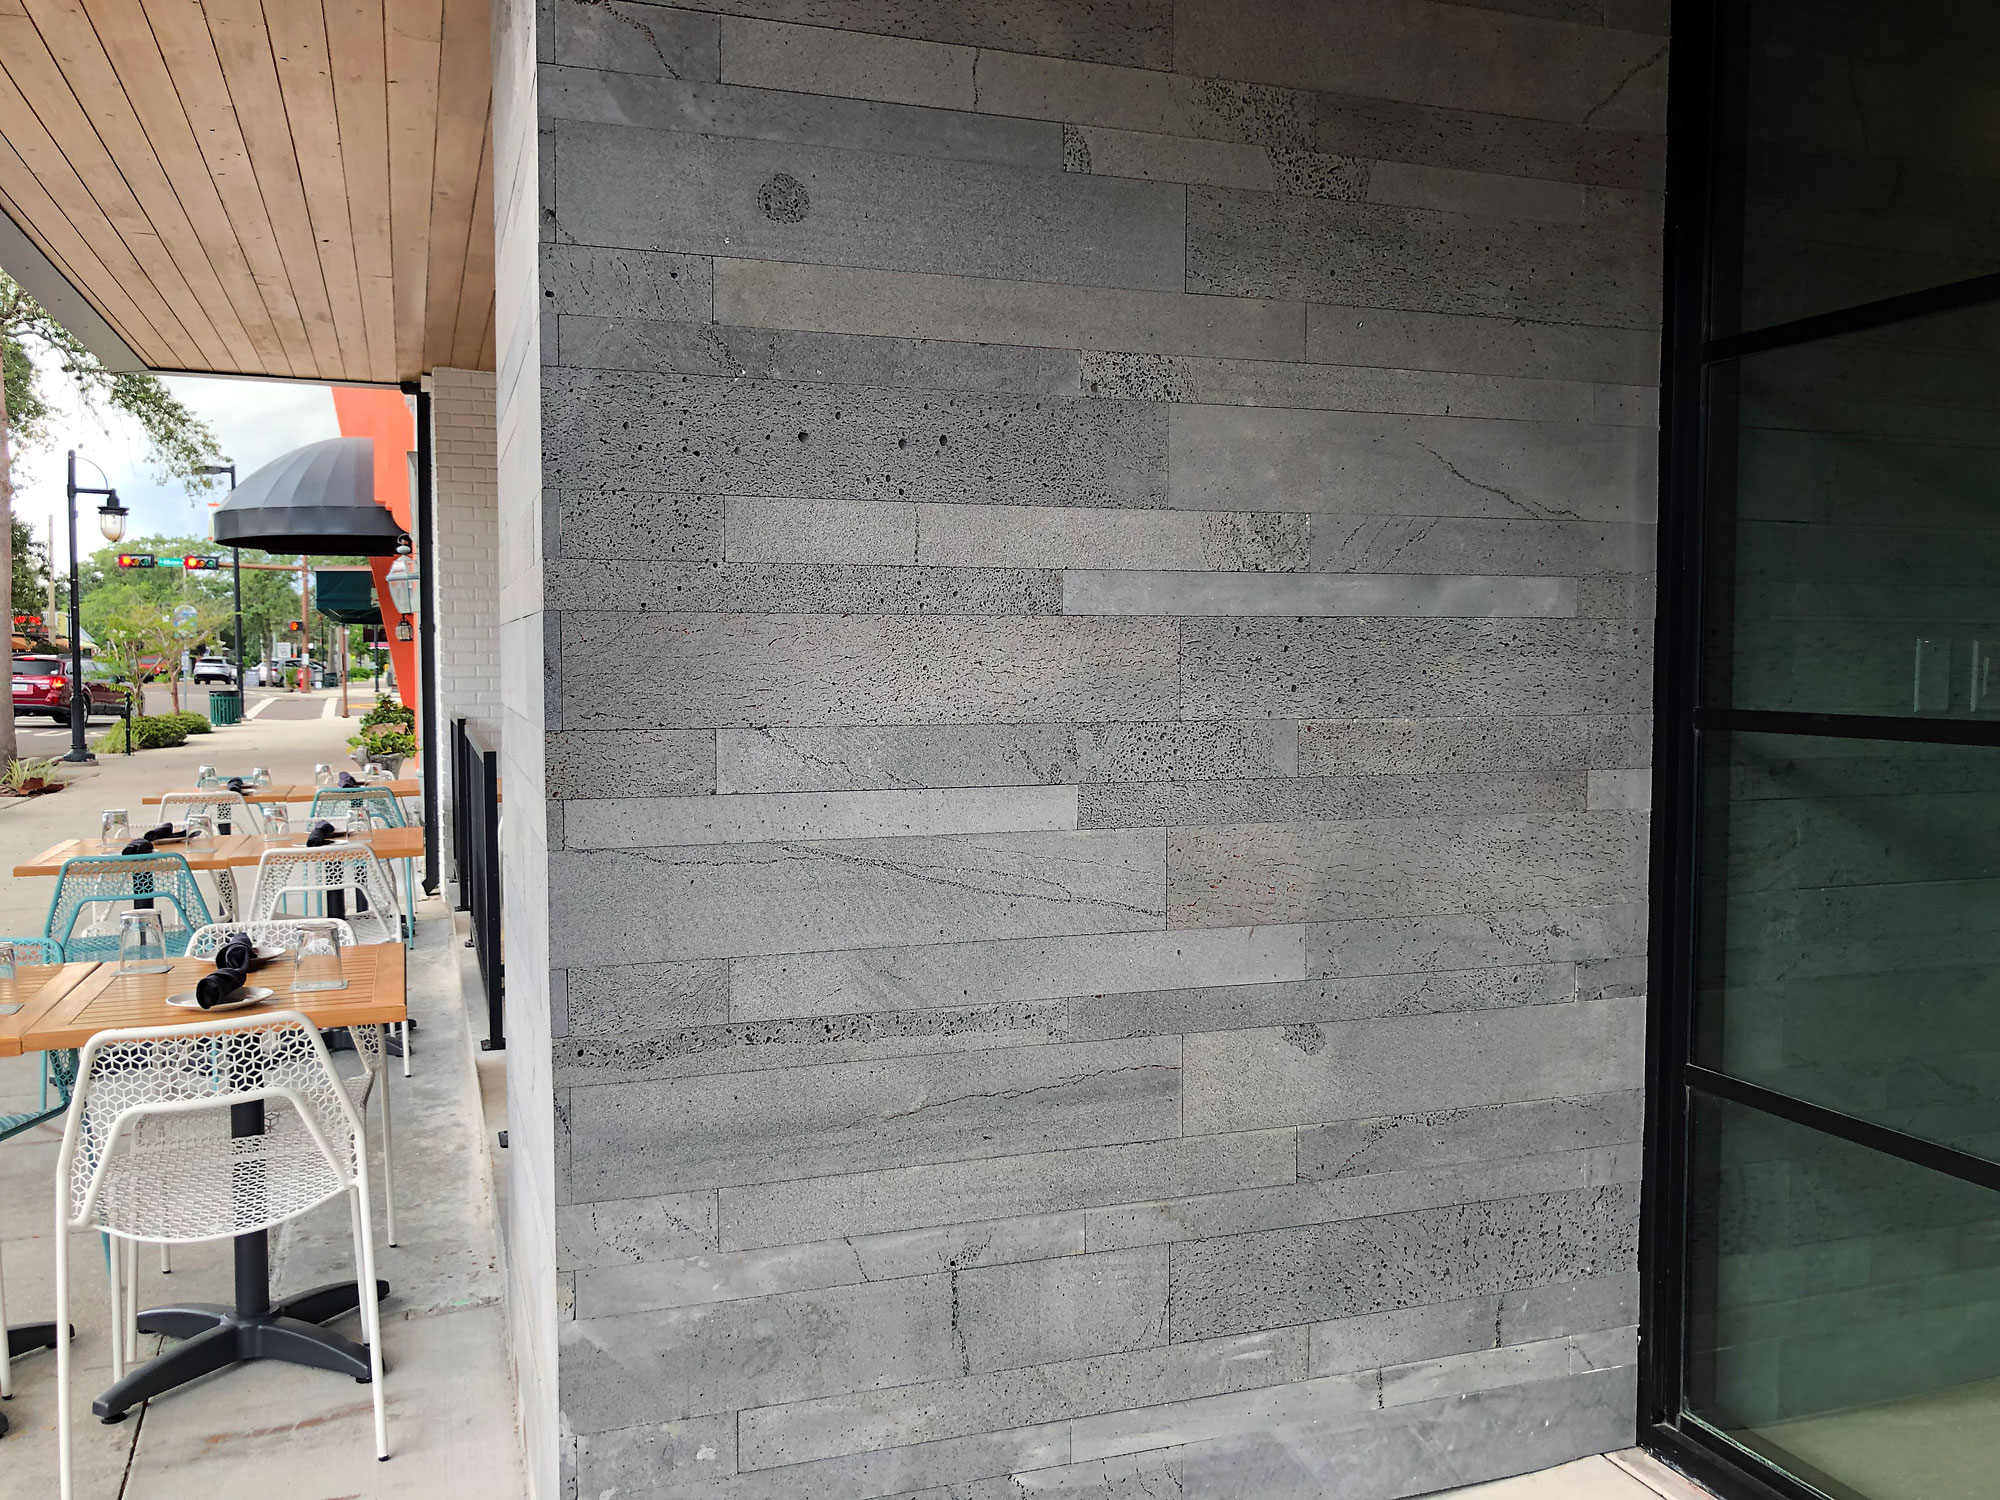 Norstone Platinum Planc Large Format Wall Tile on the exterior entry way wall of Libby's restaurant in Sarasota, FL